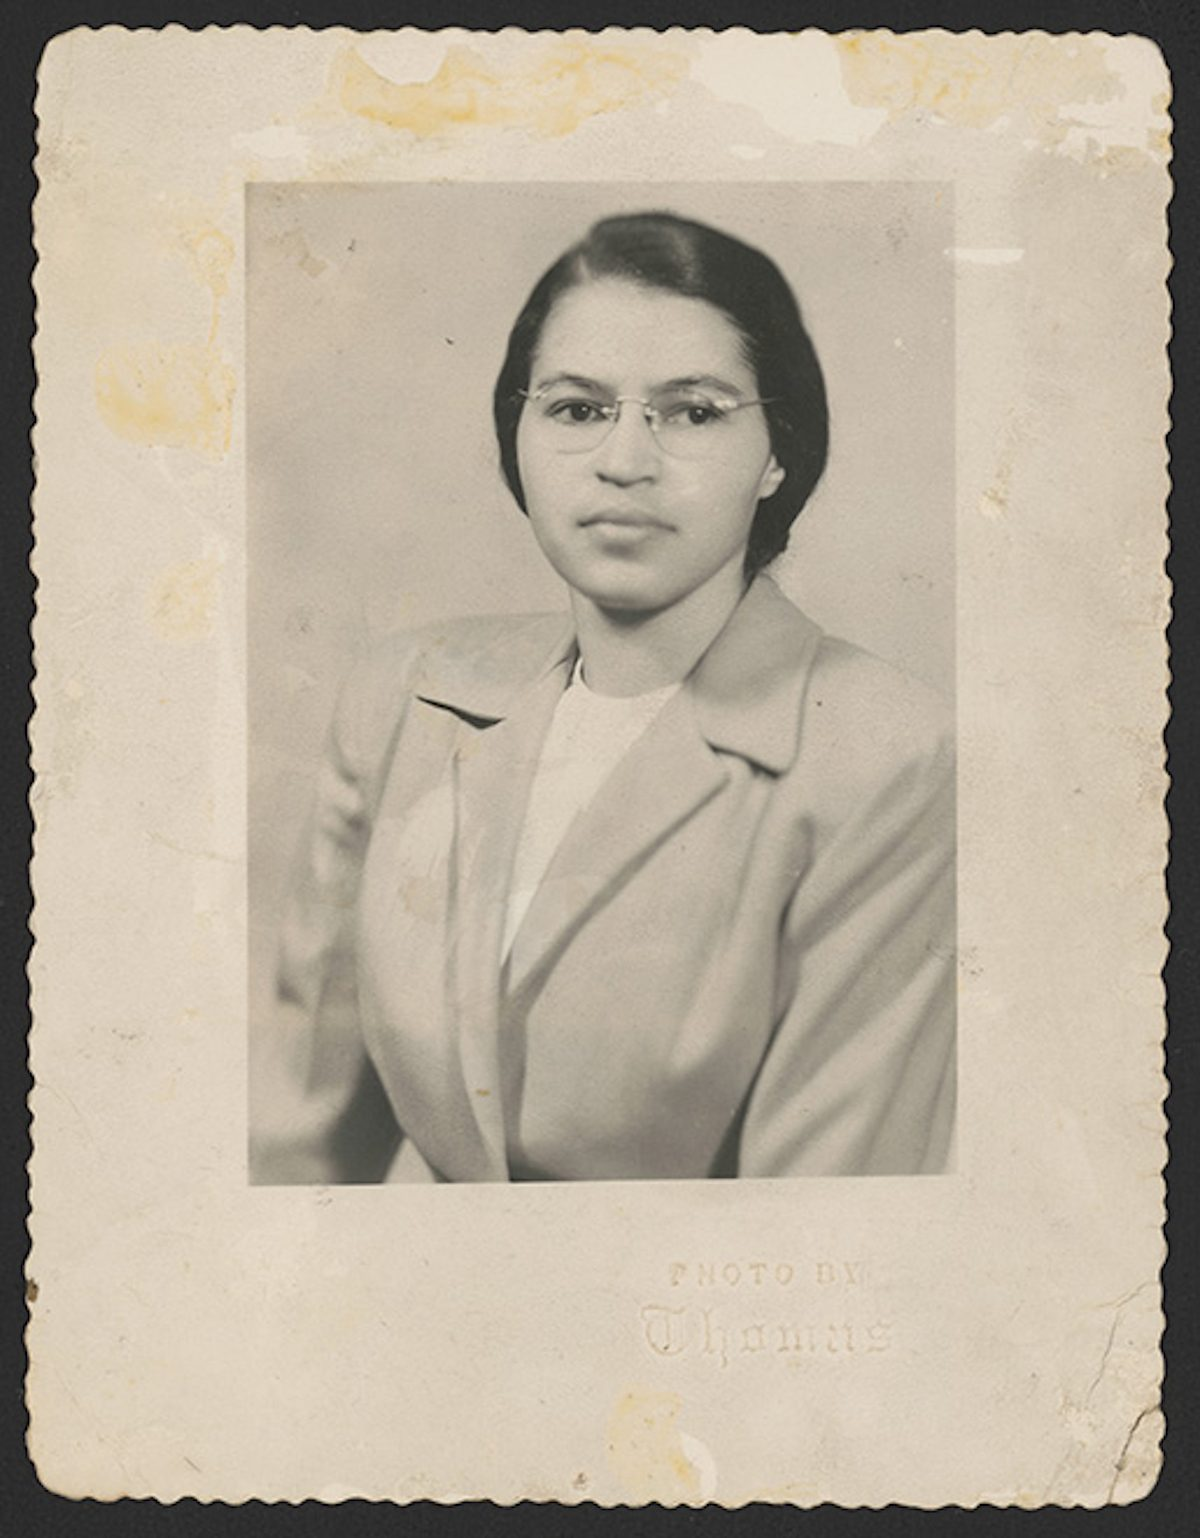 Portrait of Rosa Parks in 1950